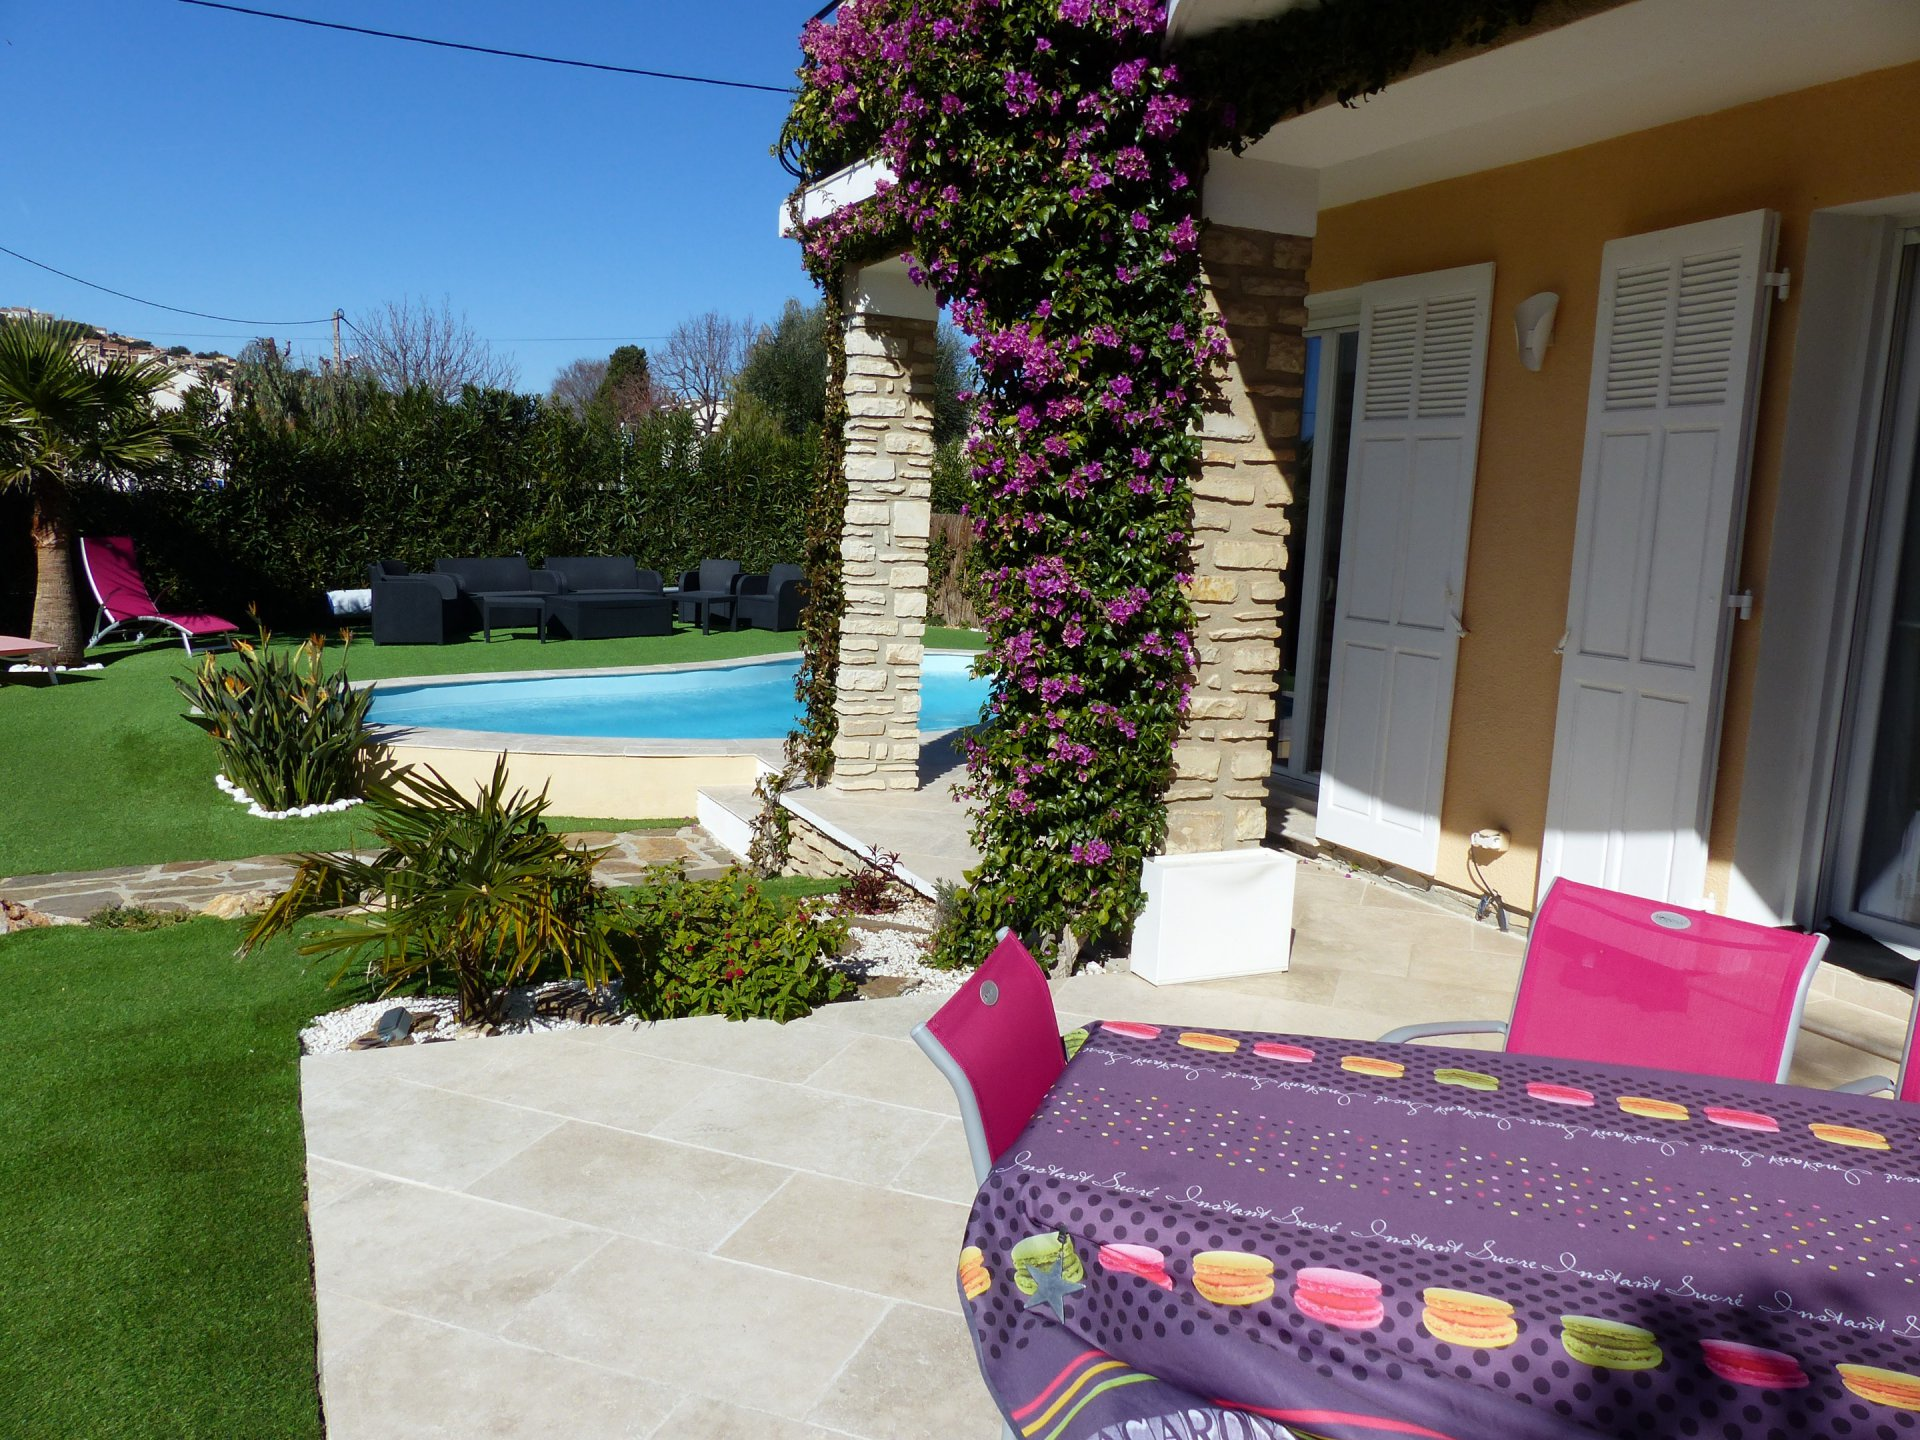 6 BEDROOM VILLA/HOUSE FOR SALE IN CARQUEIRANNE